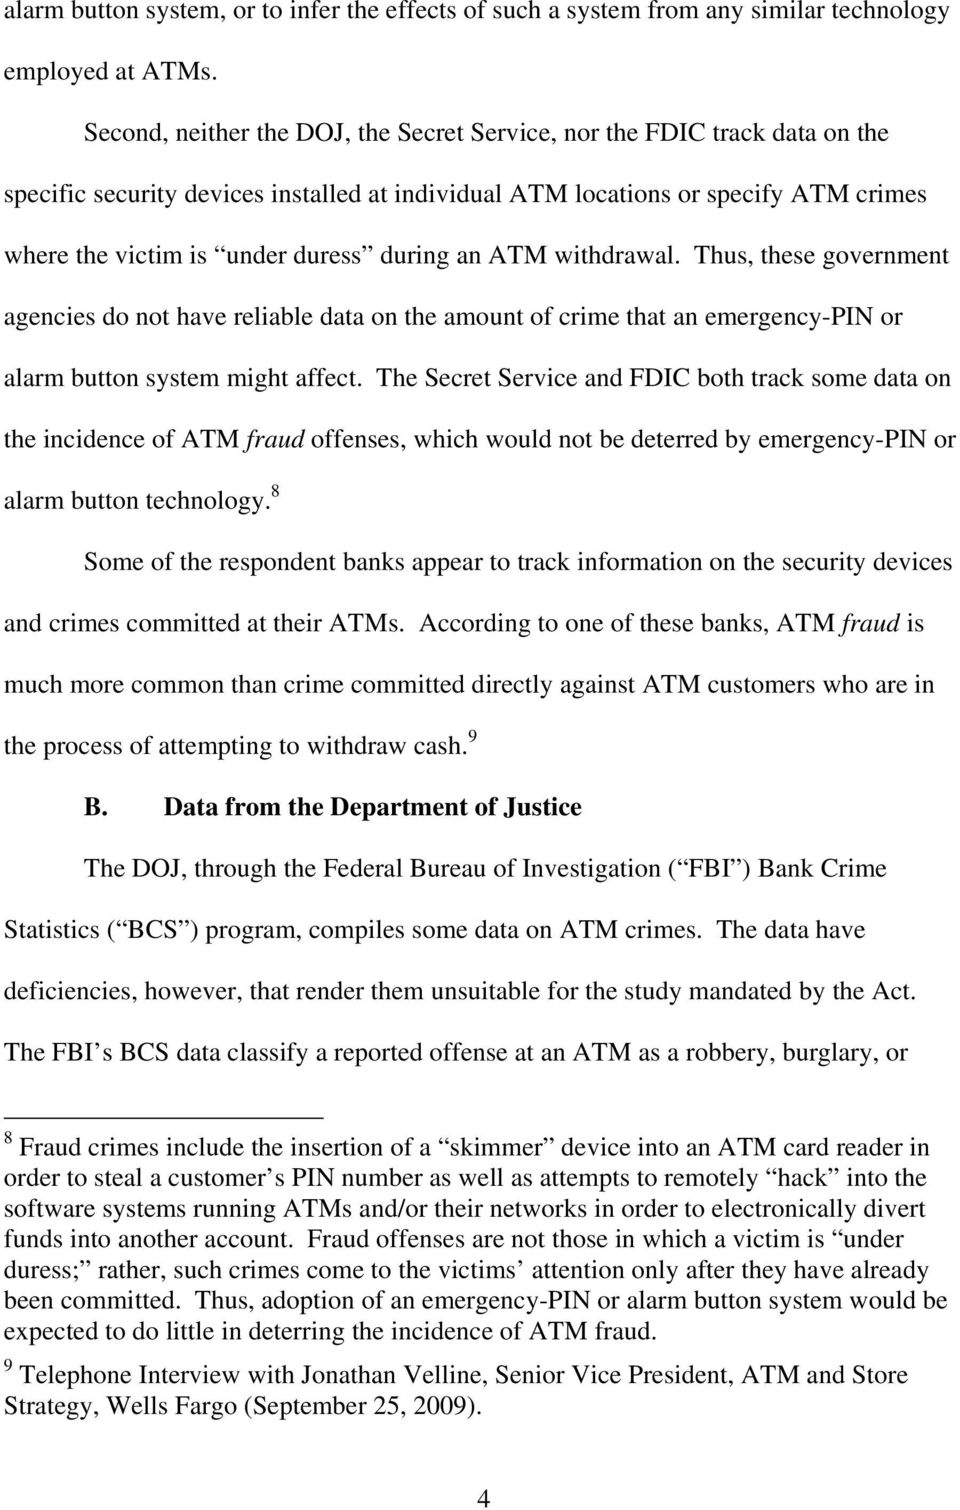 during an ATM withdrawal. Thus, these government agencies do not have reliable data on the amount of crime that an emergency-pin or alarm button system might affect.